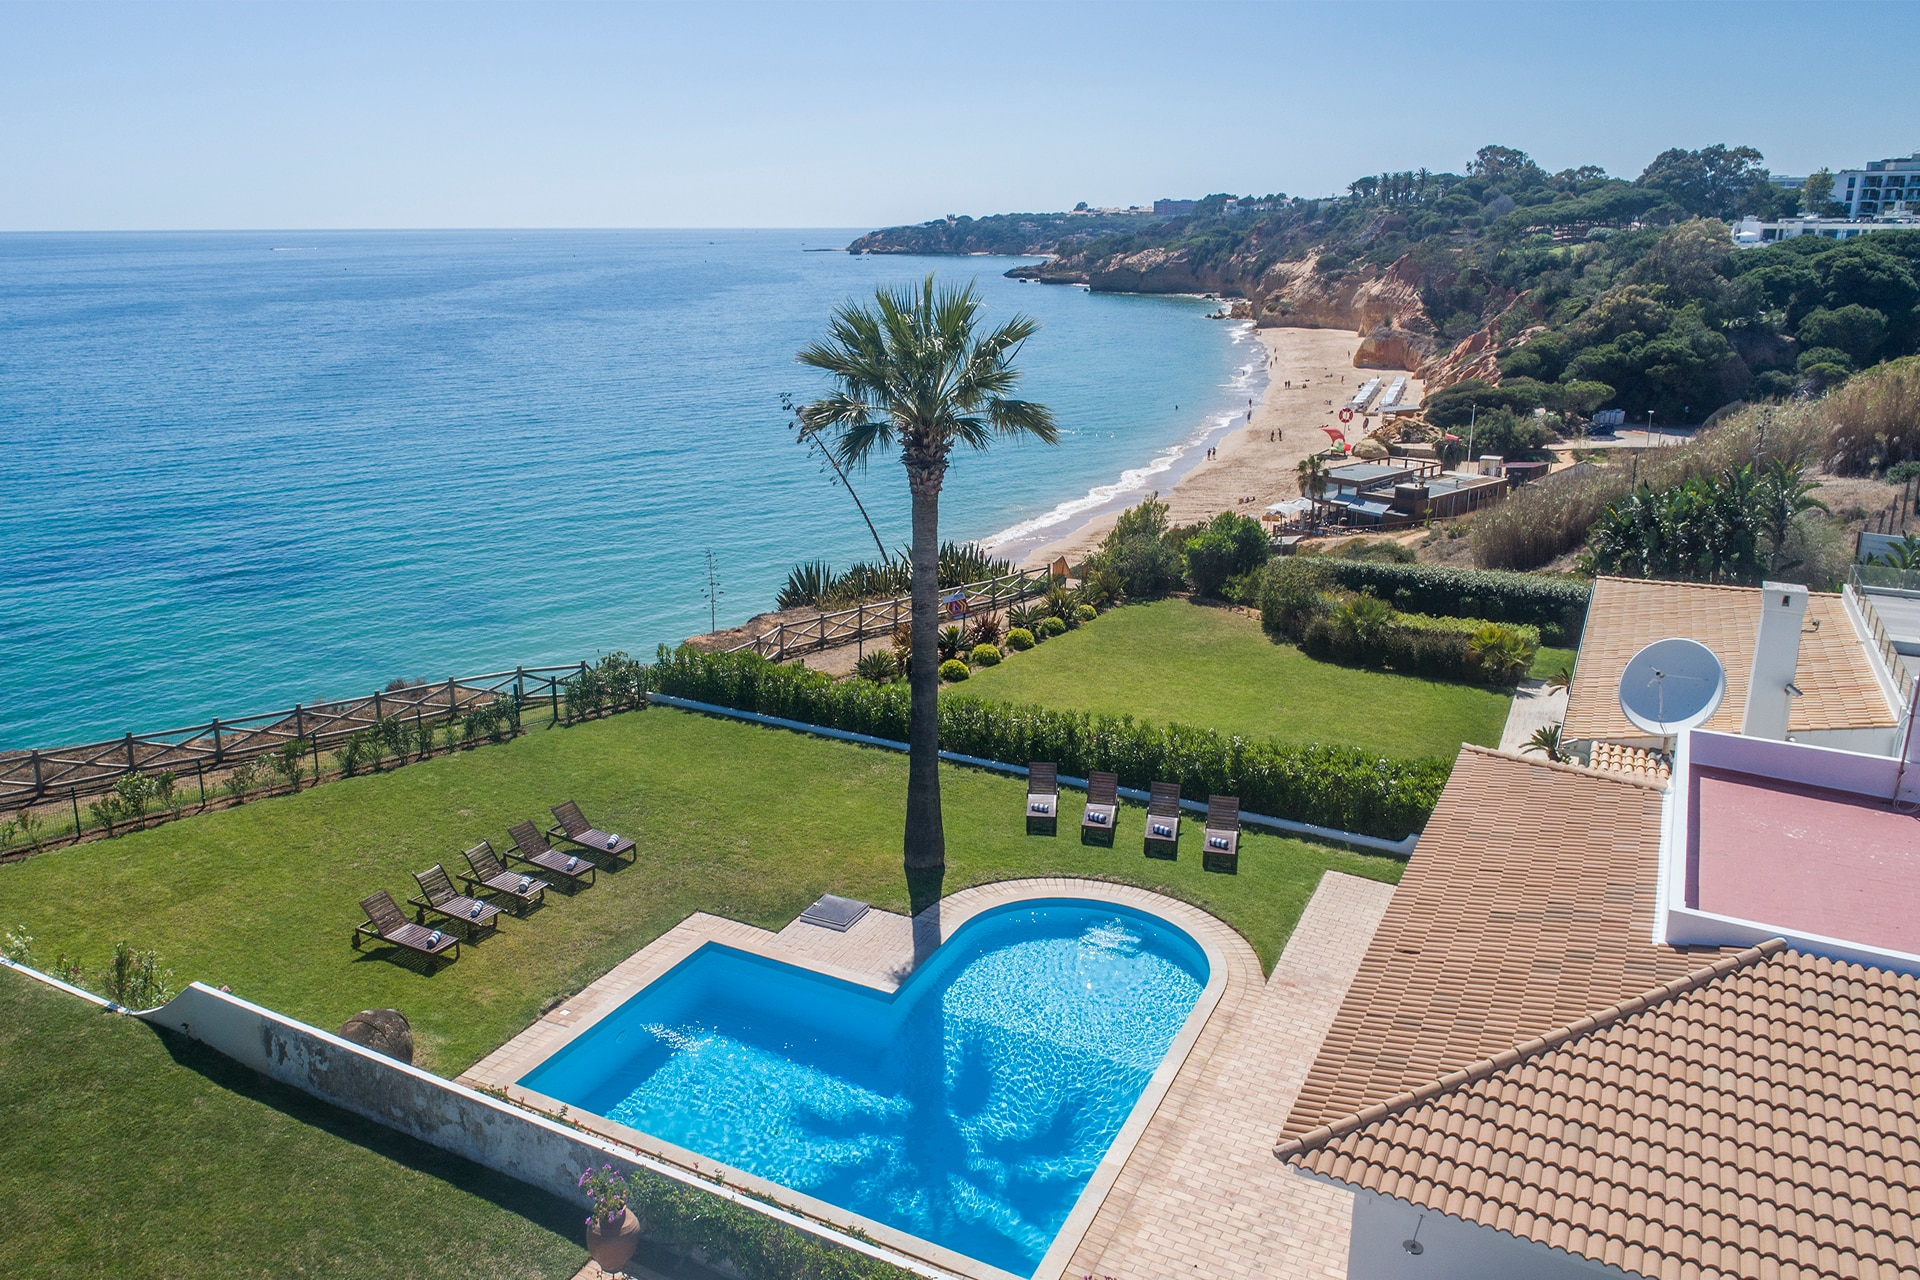 Property Image 1 - Marvelous beachfront villa in Algarve